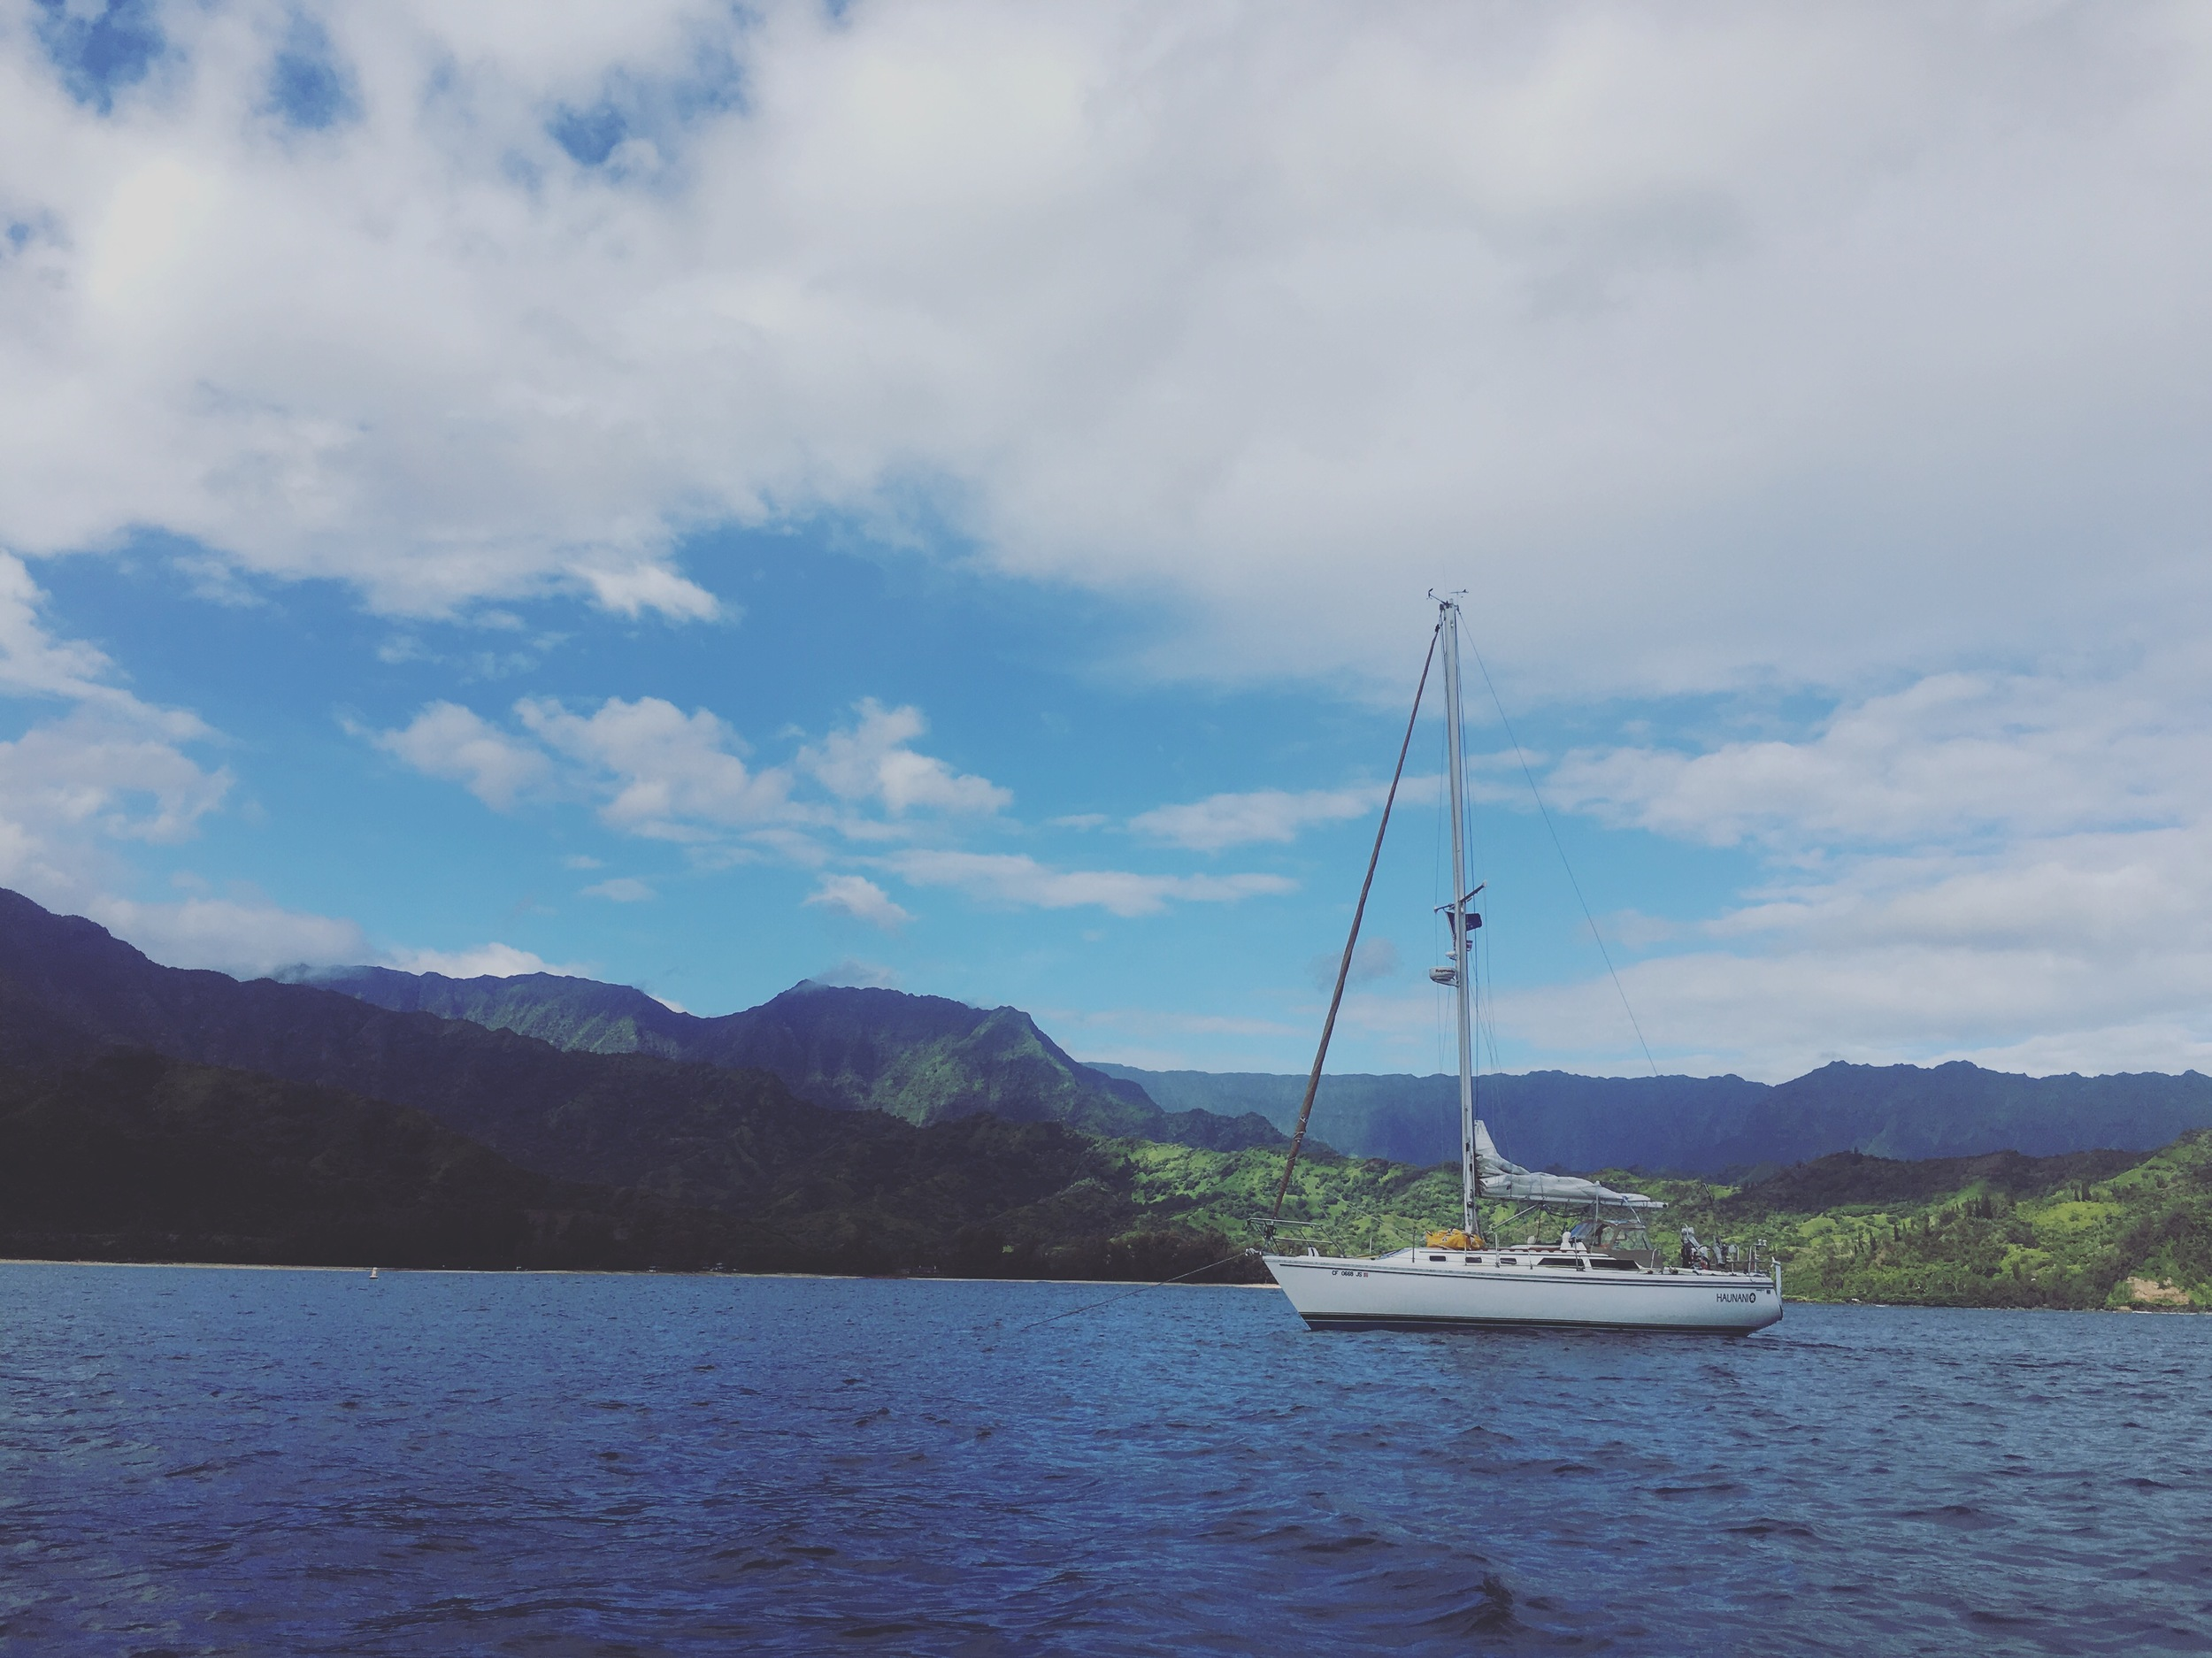 Haunani at rest in Hanalei bay after my arrival